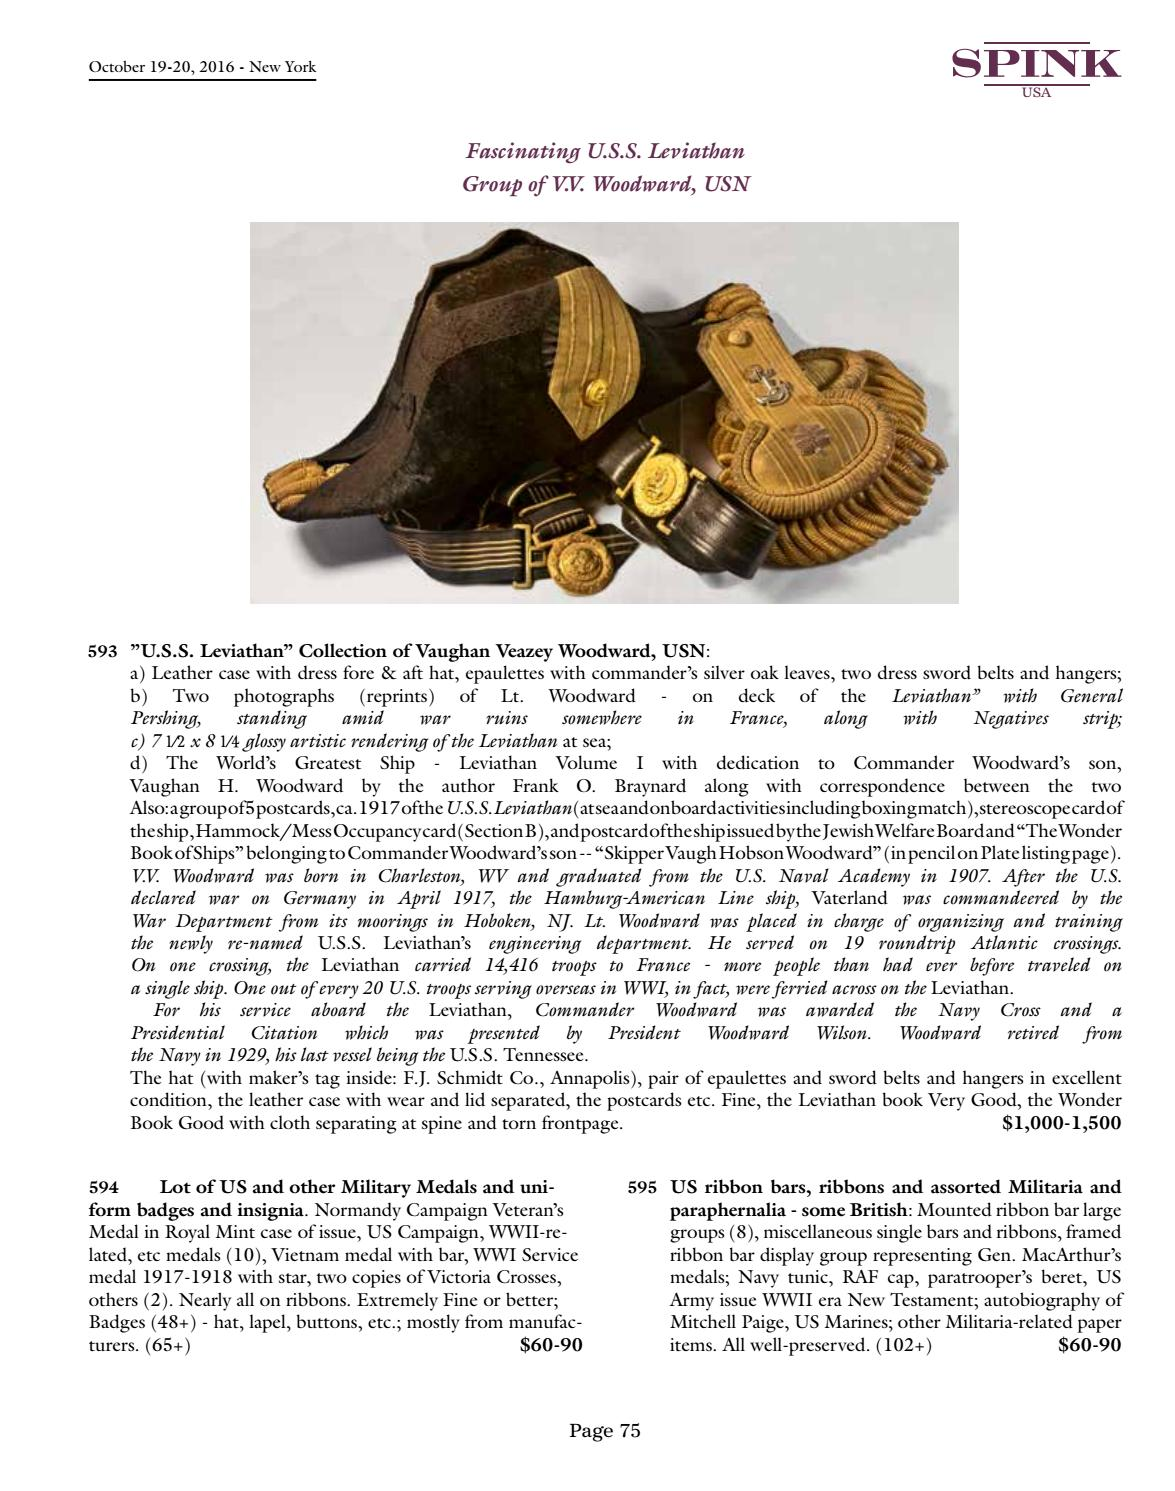 326 - The Numismatic Collector's Series Sale by Spink and